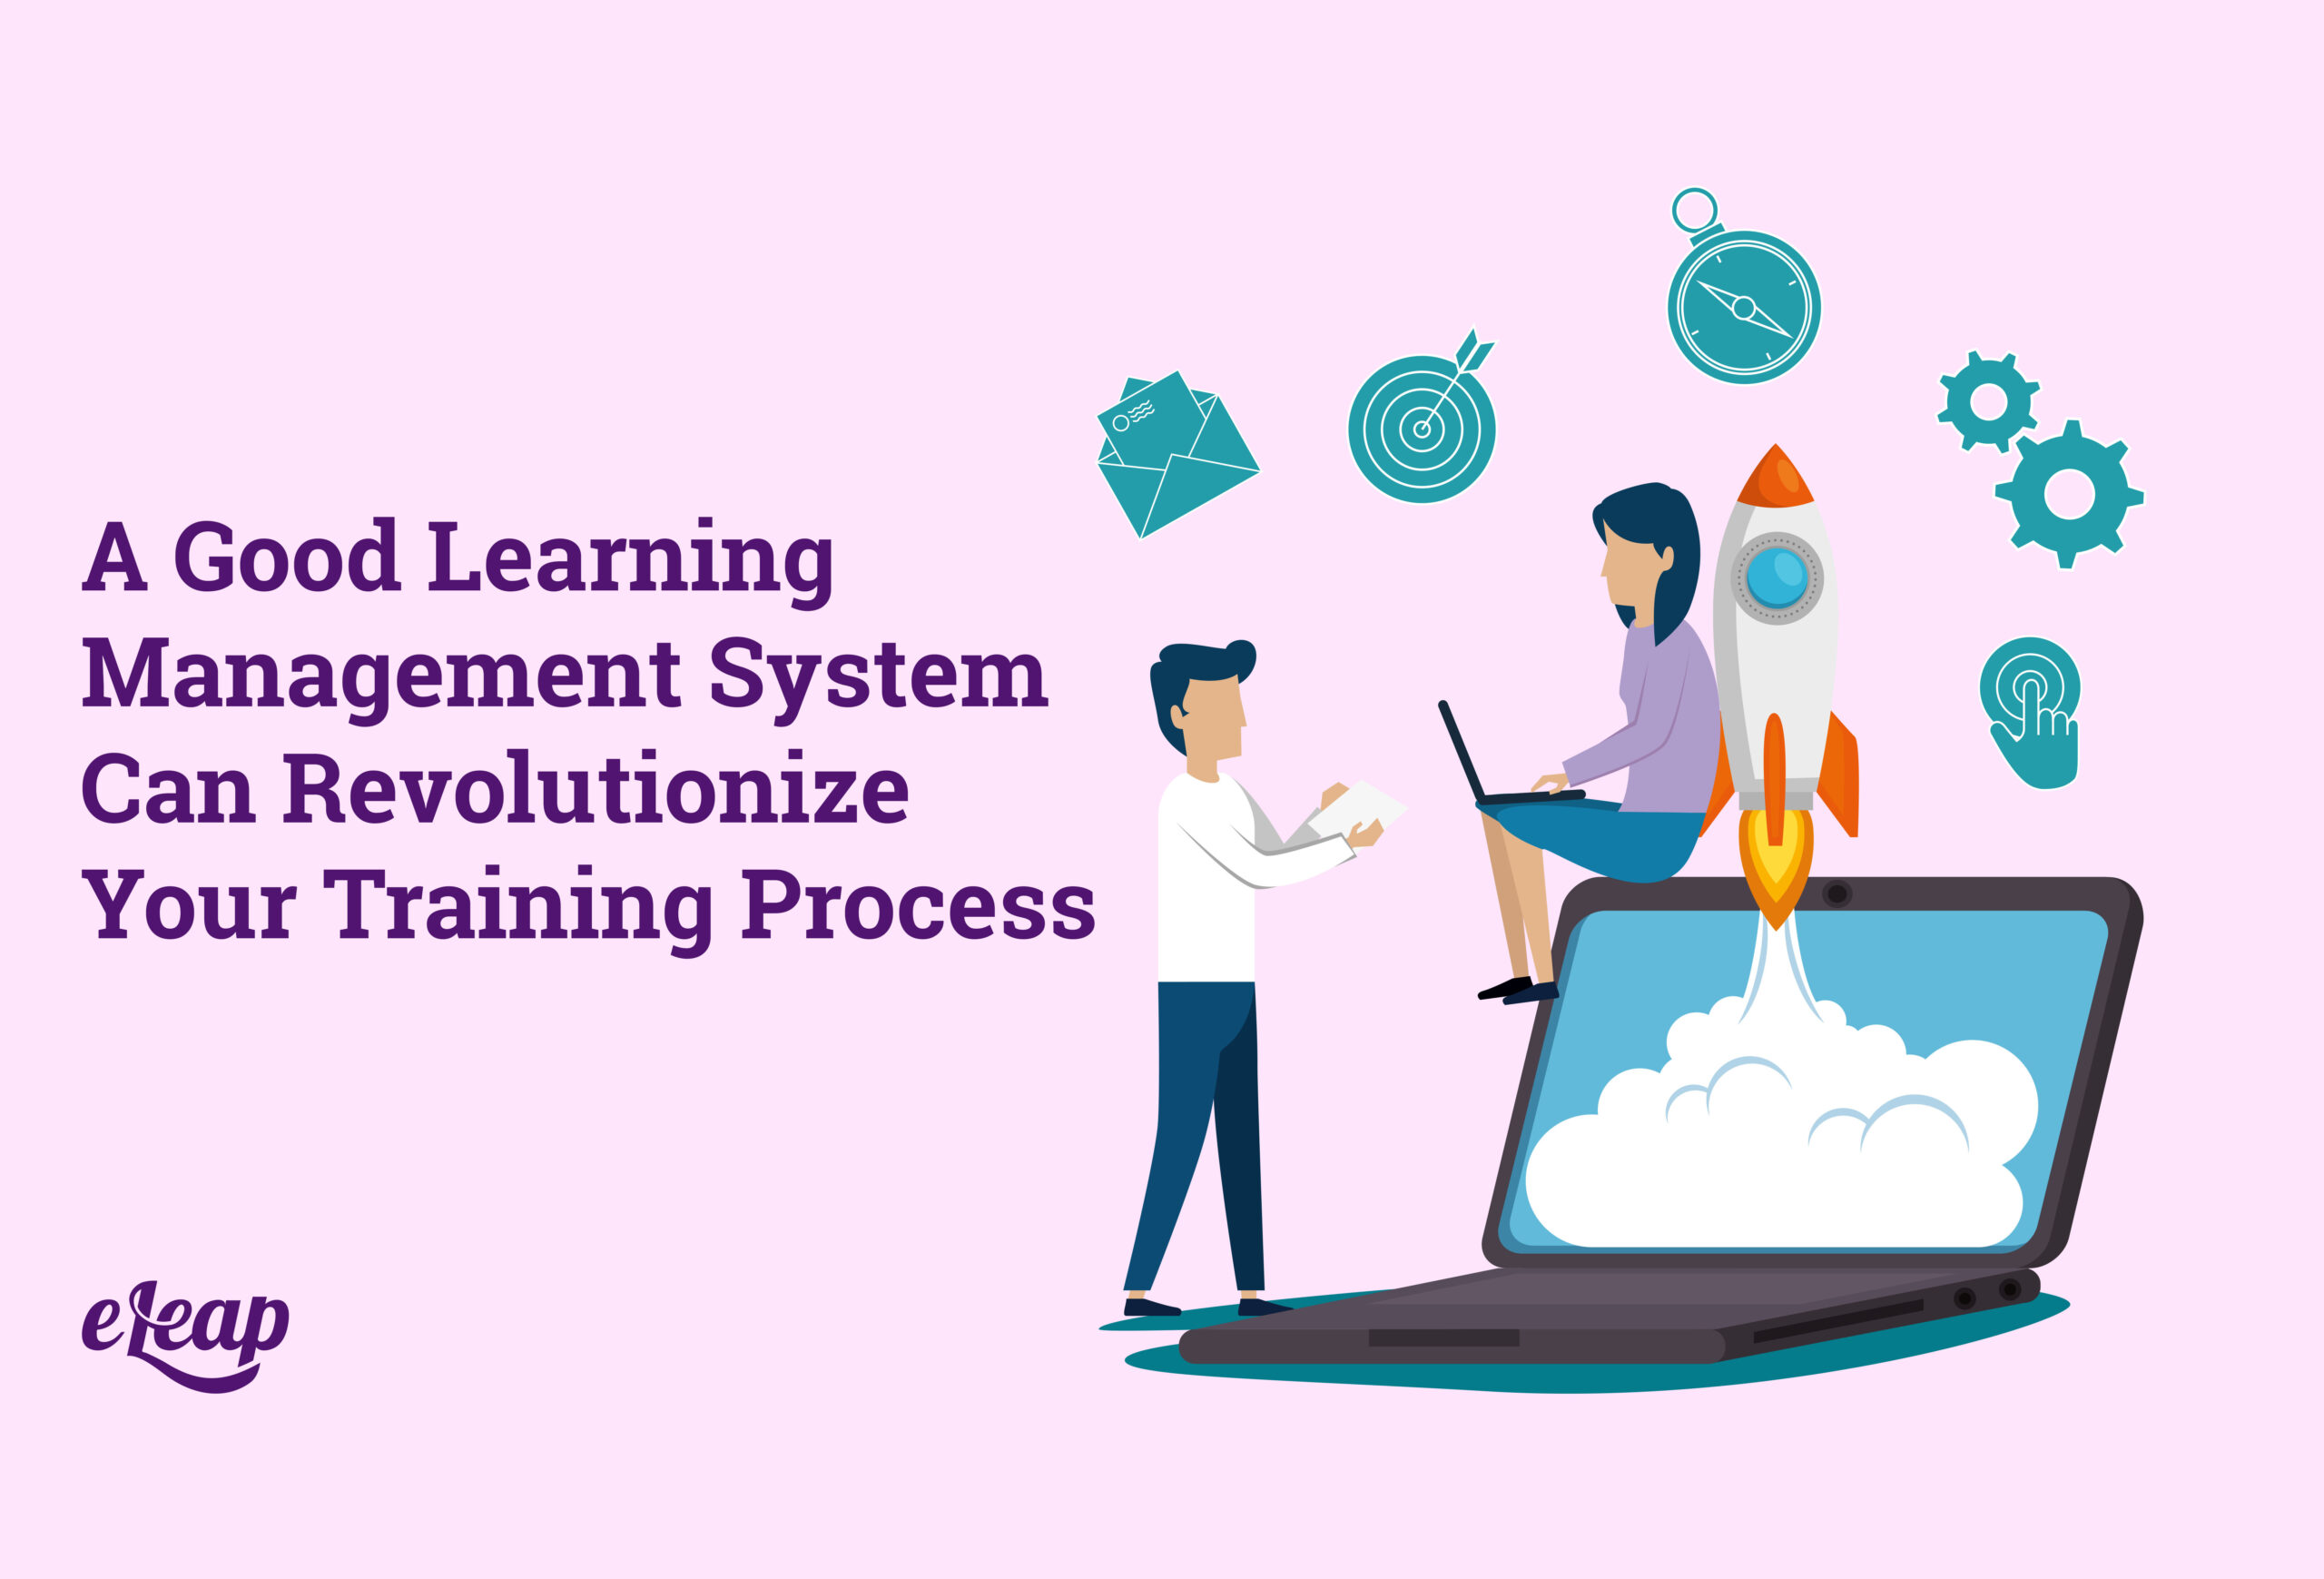 A Good Learning Management System Can Revolutionize Your Training Process